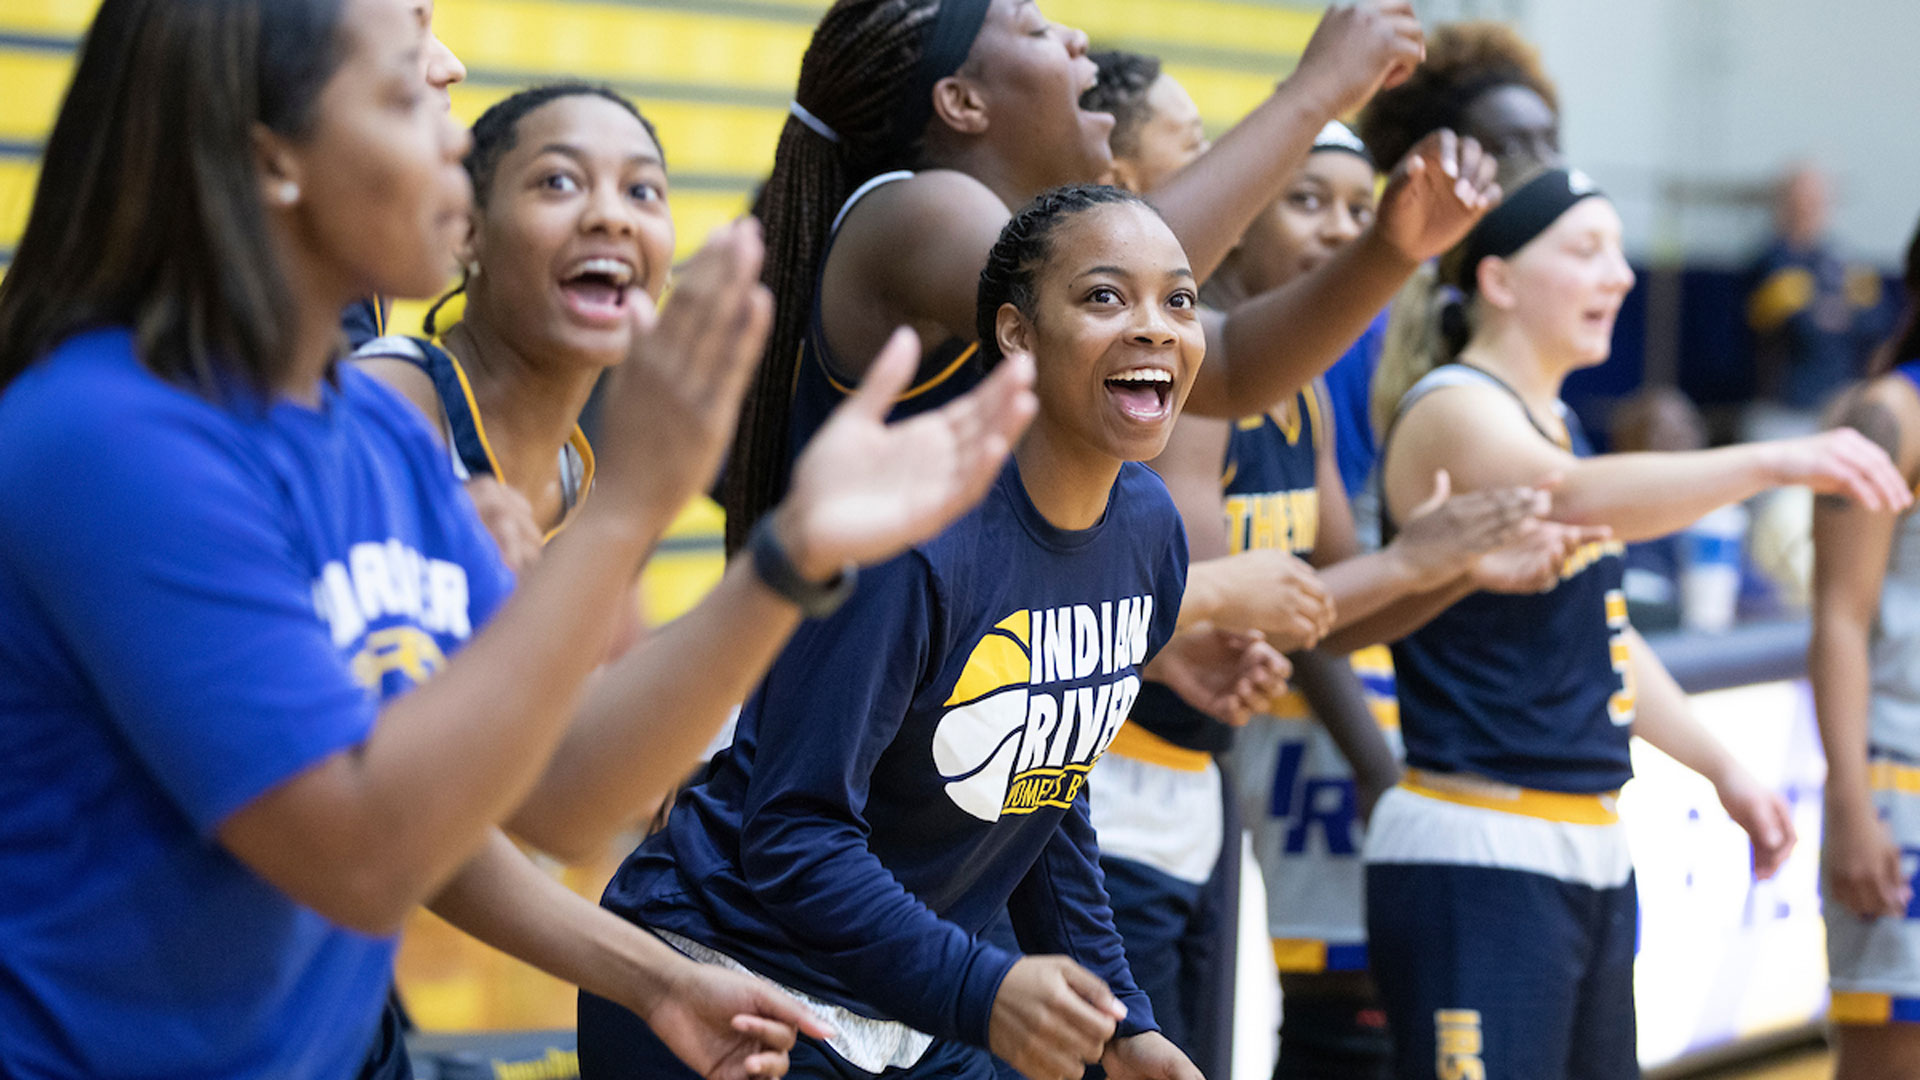 IRSC student athletes cheer their colleagues on during Basketball kickoff event held on the Main Campus in Fort Pierce Wednesday, October 23, 2019.